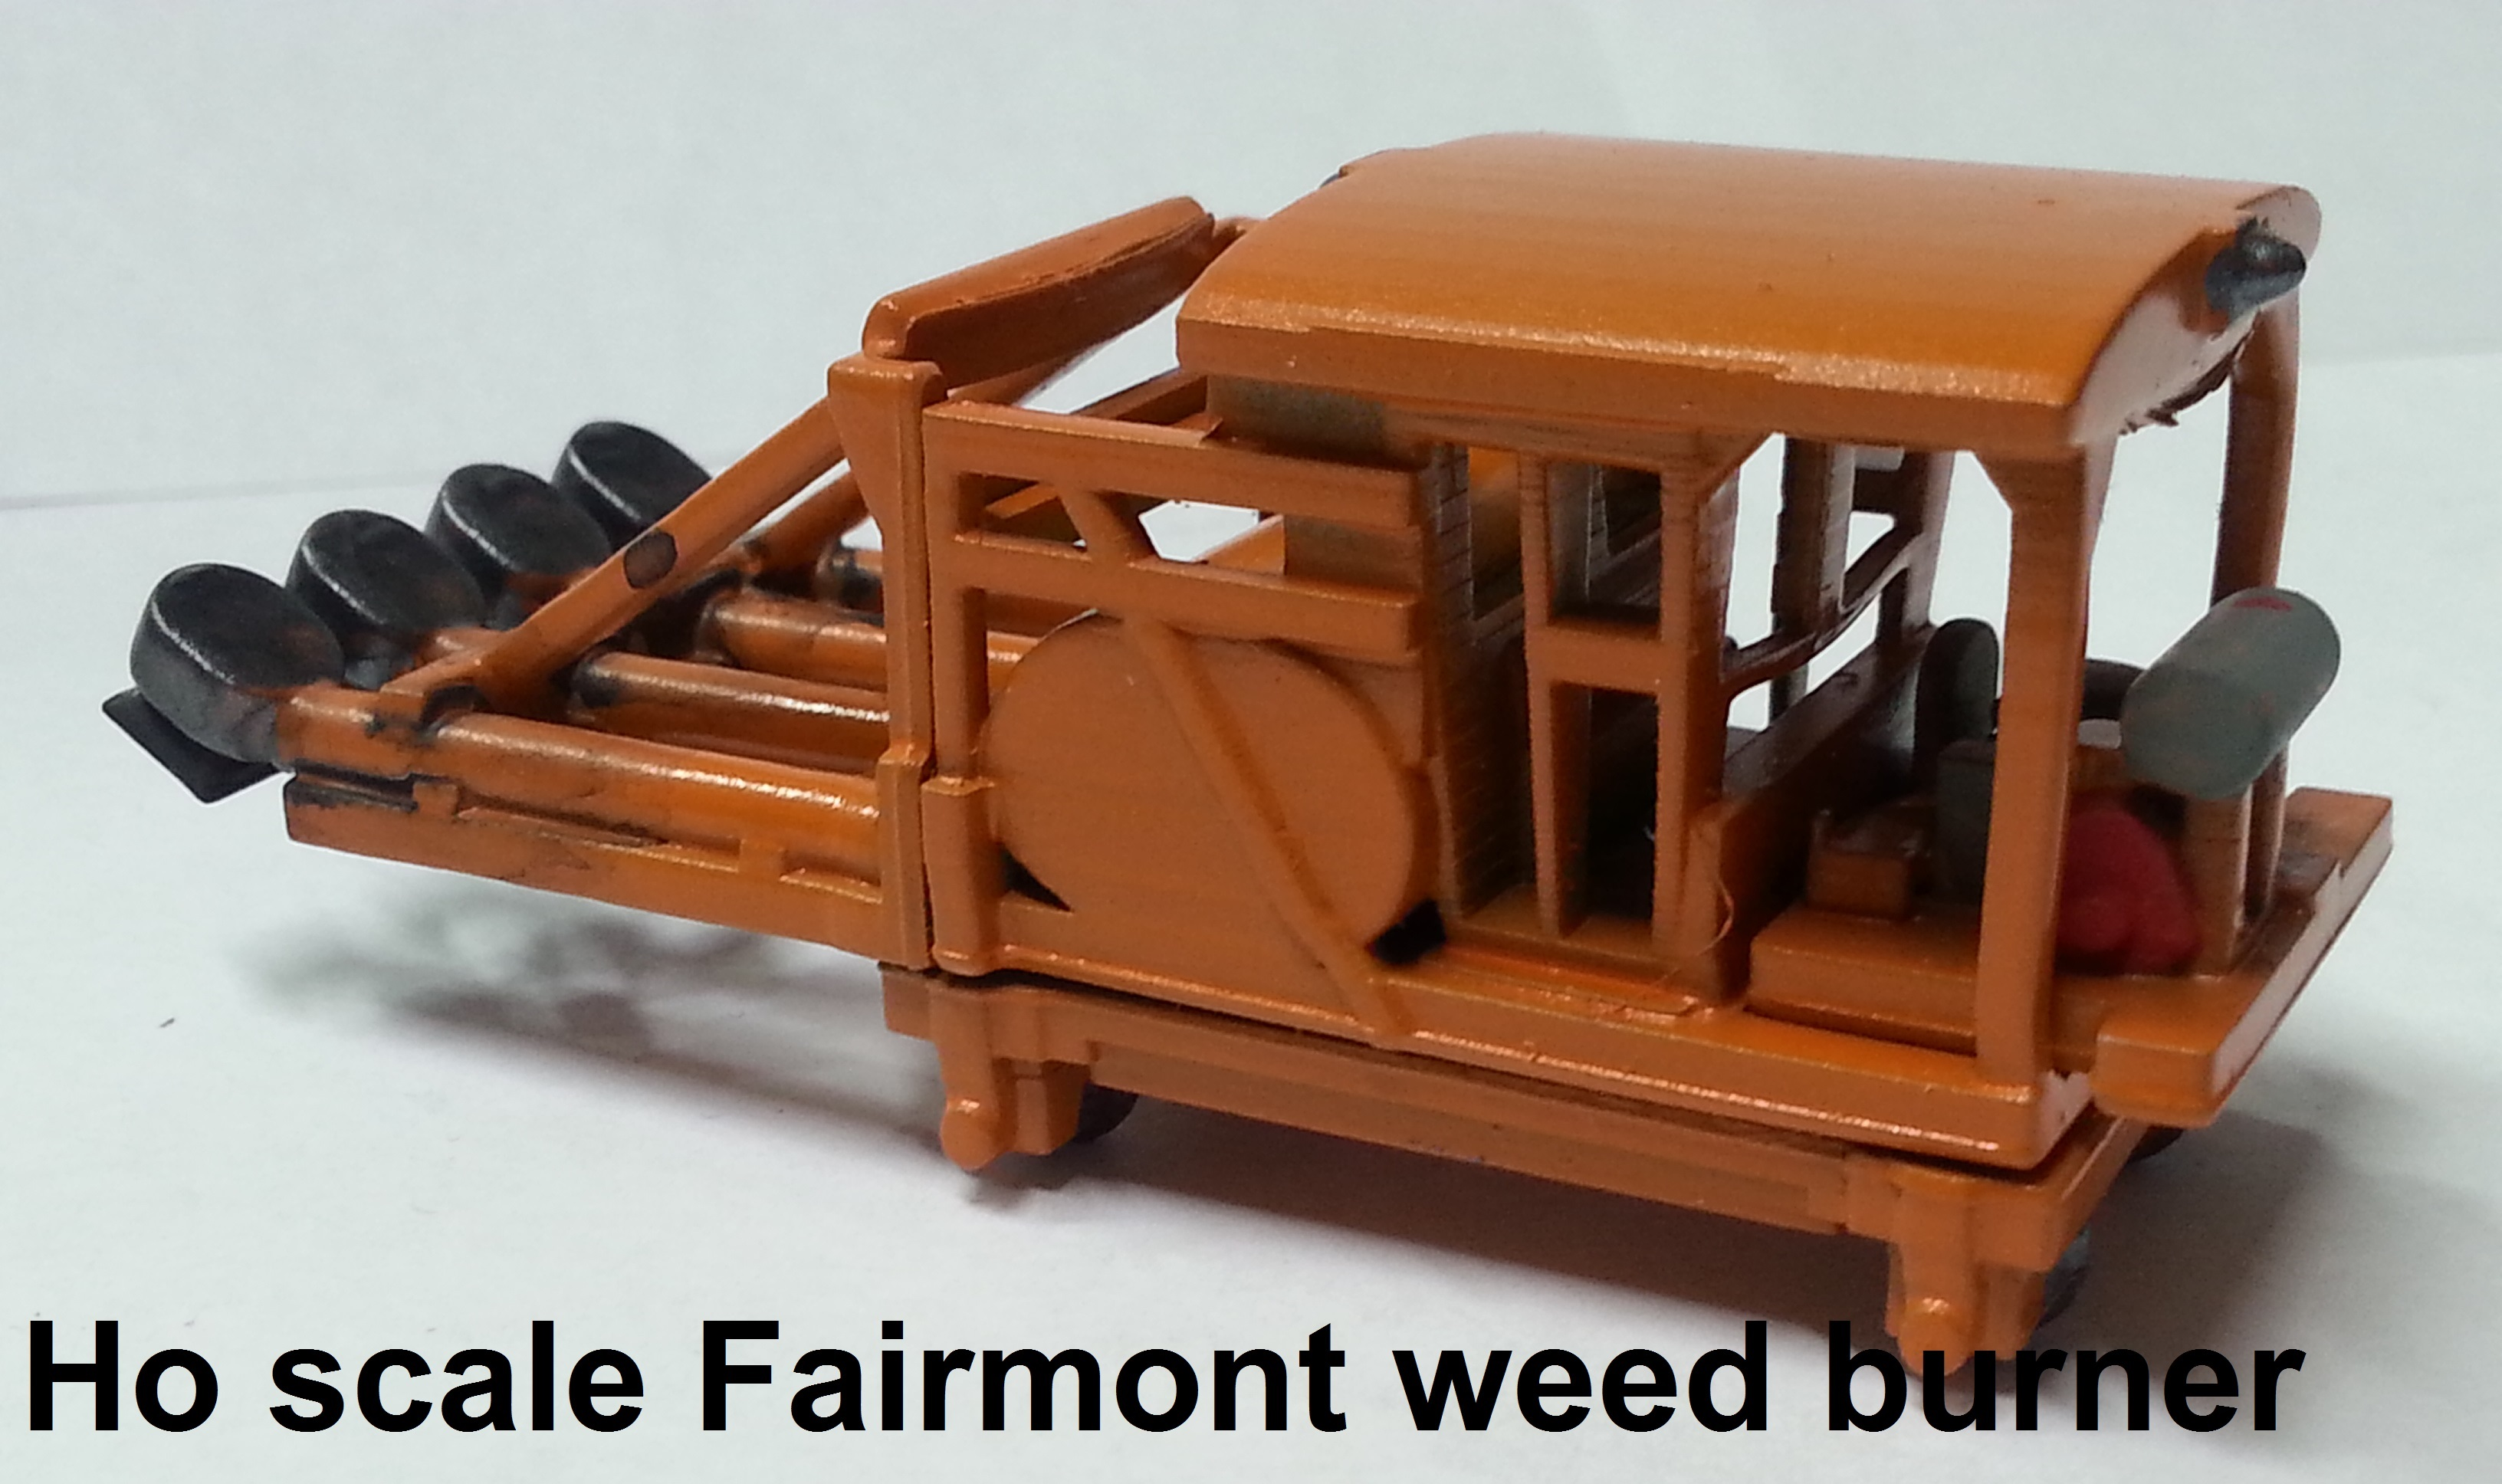 Ho scale Fairmont weed burner